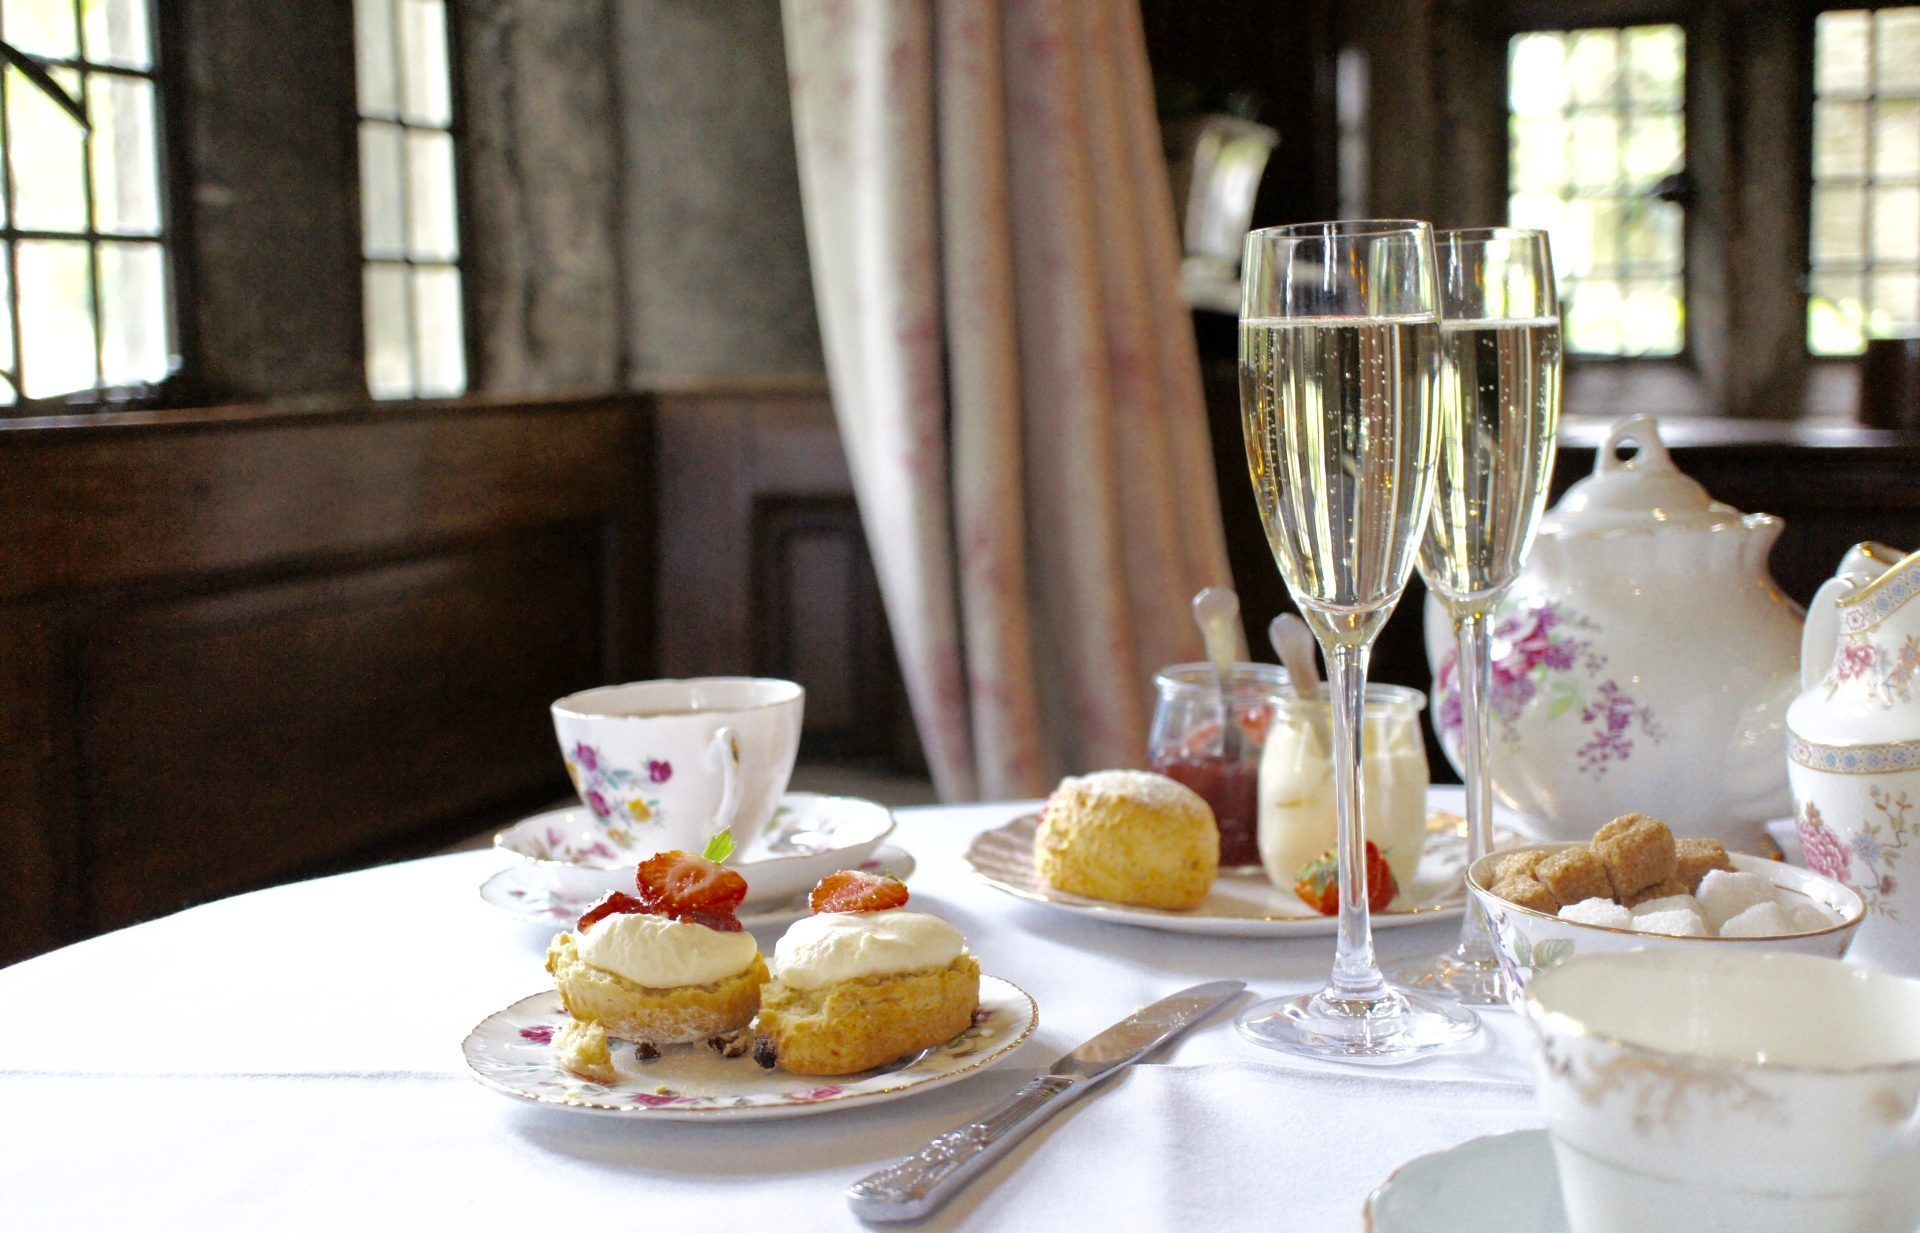 Mother's Day gift... Prosecco afternoon tea voucher? Buy